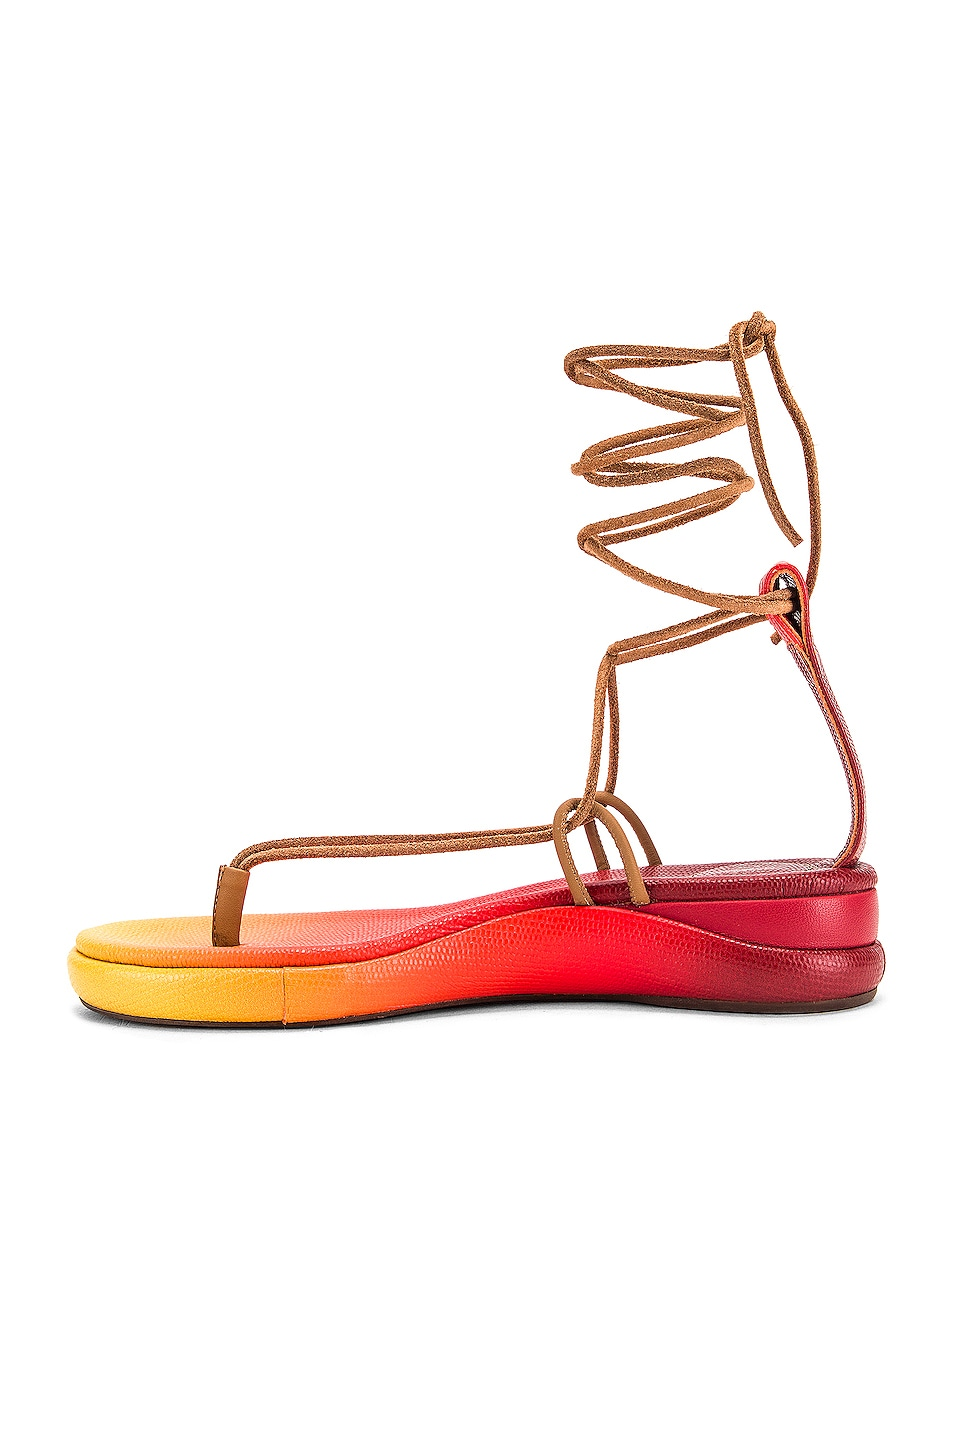 Image 5 of Chloe Tie Sandals in Yellow & Red